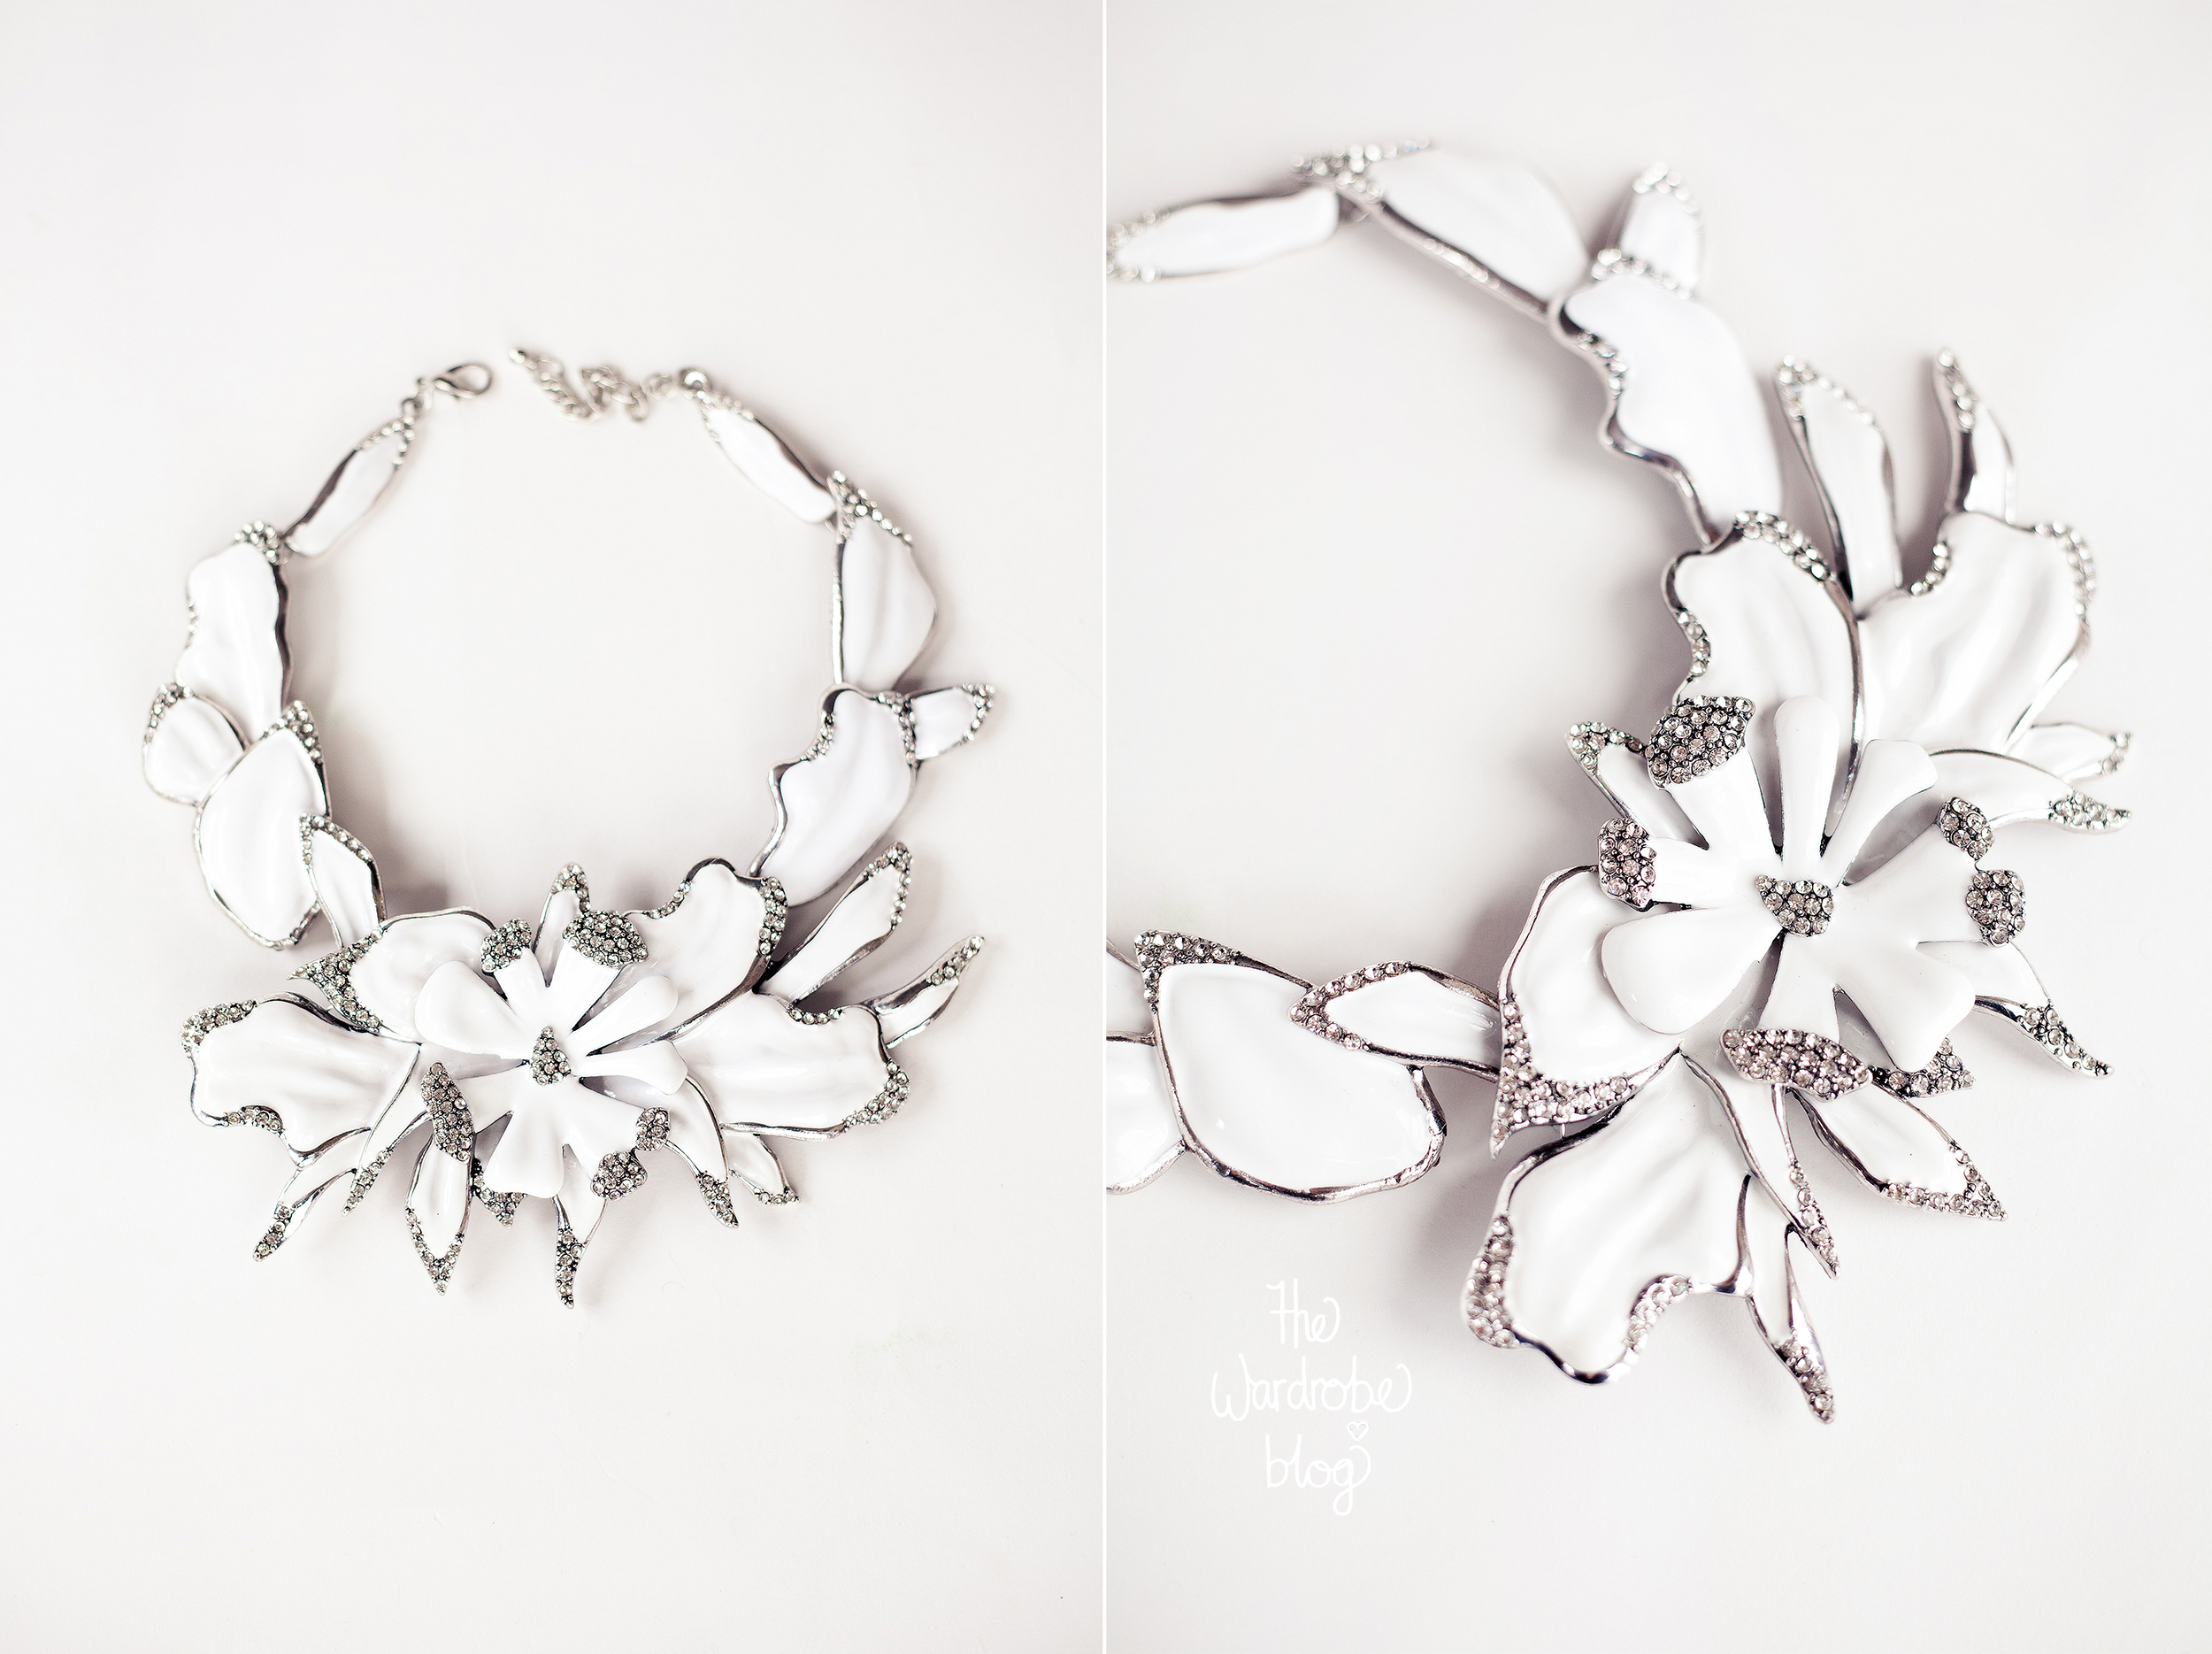 The Orchid Necklace from Claire Hahn.